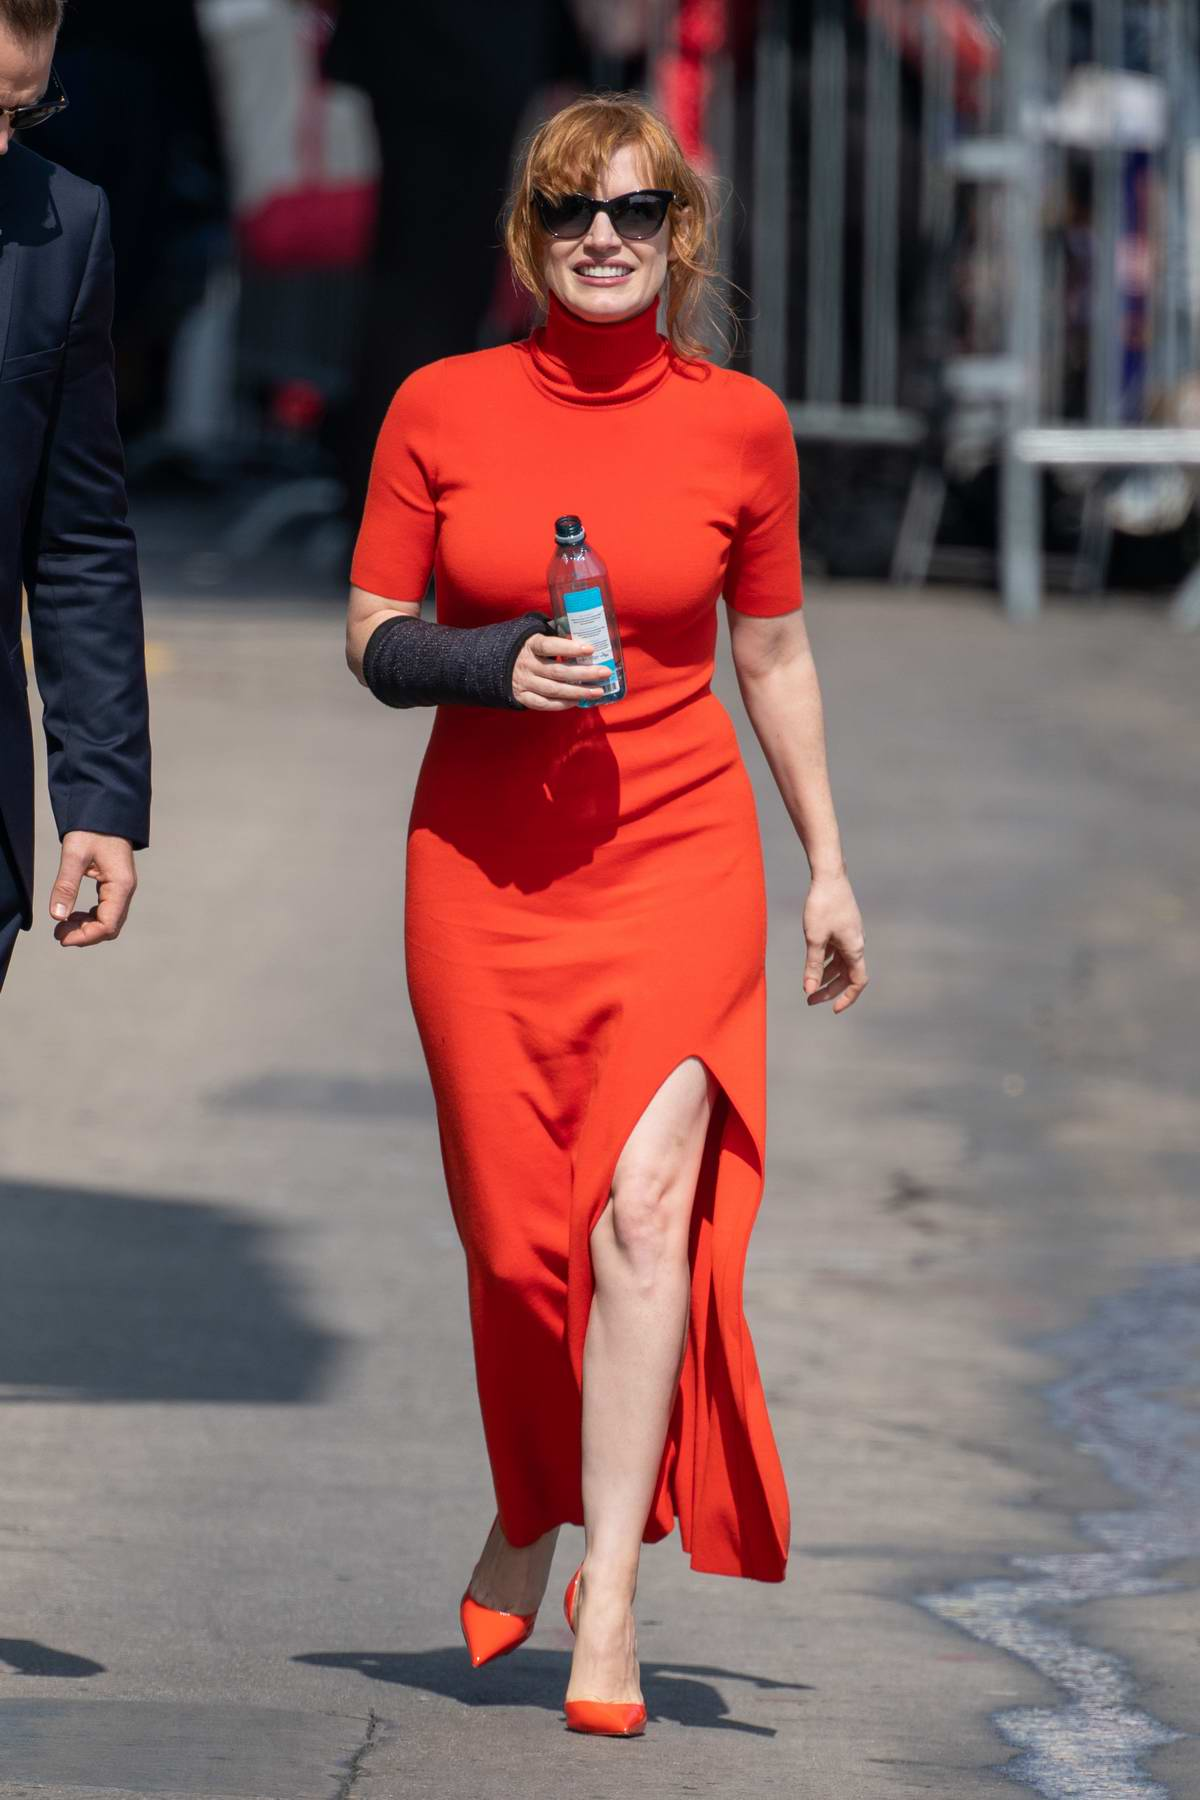 Jessica Chastain looks striking in red as she arrives for an appearance on 'Jimmy Kimmel Live!' in Hollywood, California